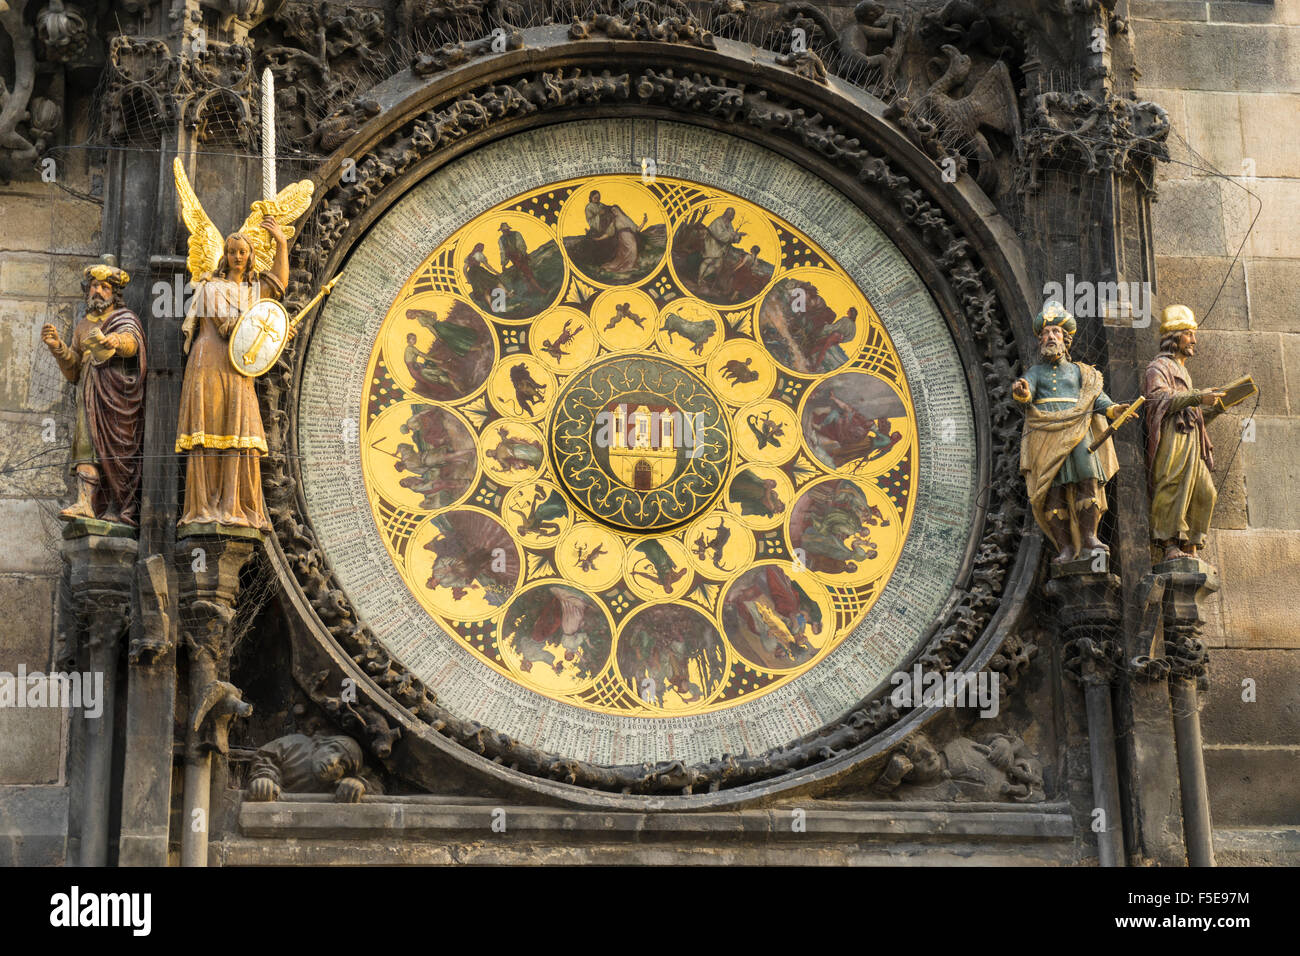 Detail of the Astronomical Clock, Old Town Hall, UNESCO World Heritage Site, Prague, Czech Republic, Europe - Stock Image